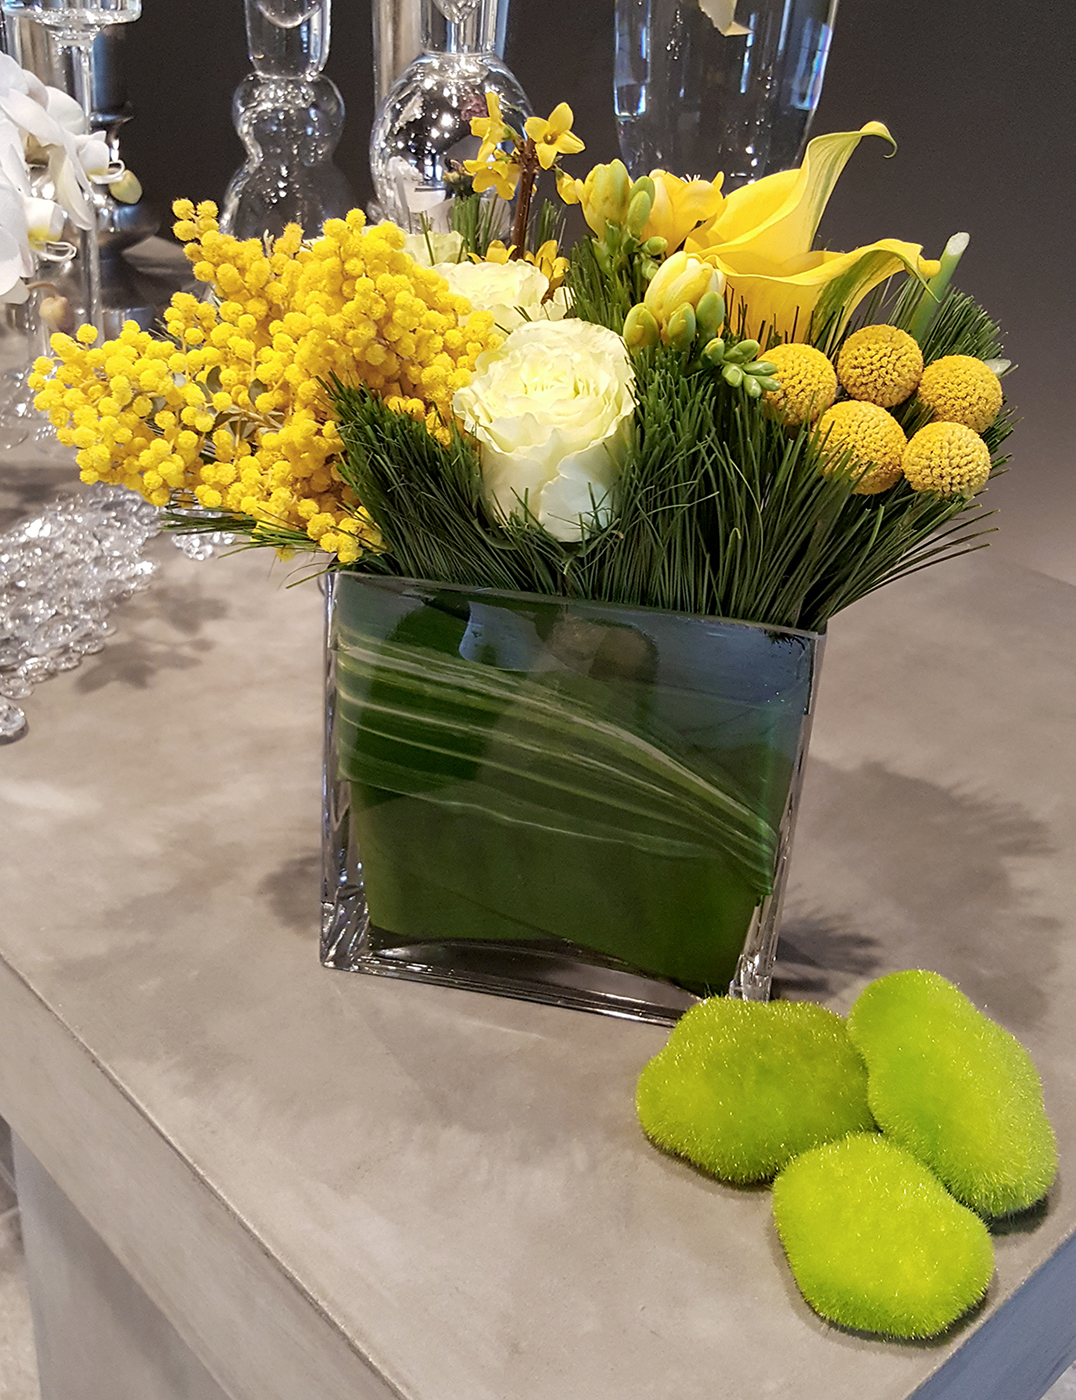 Ornate and unique yellow flowers for office and restaurant settings